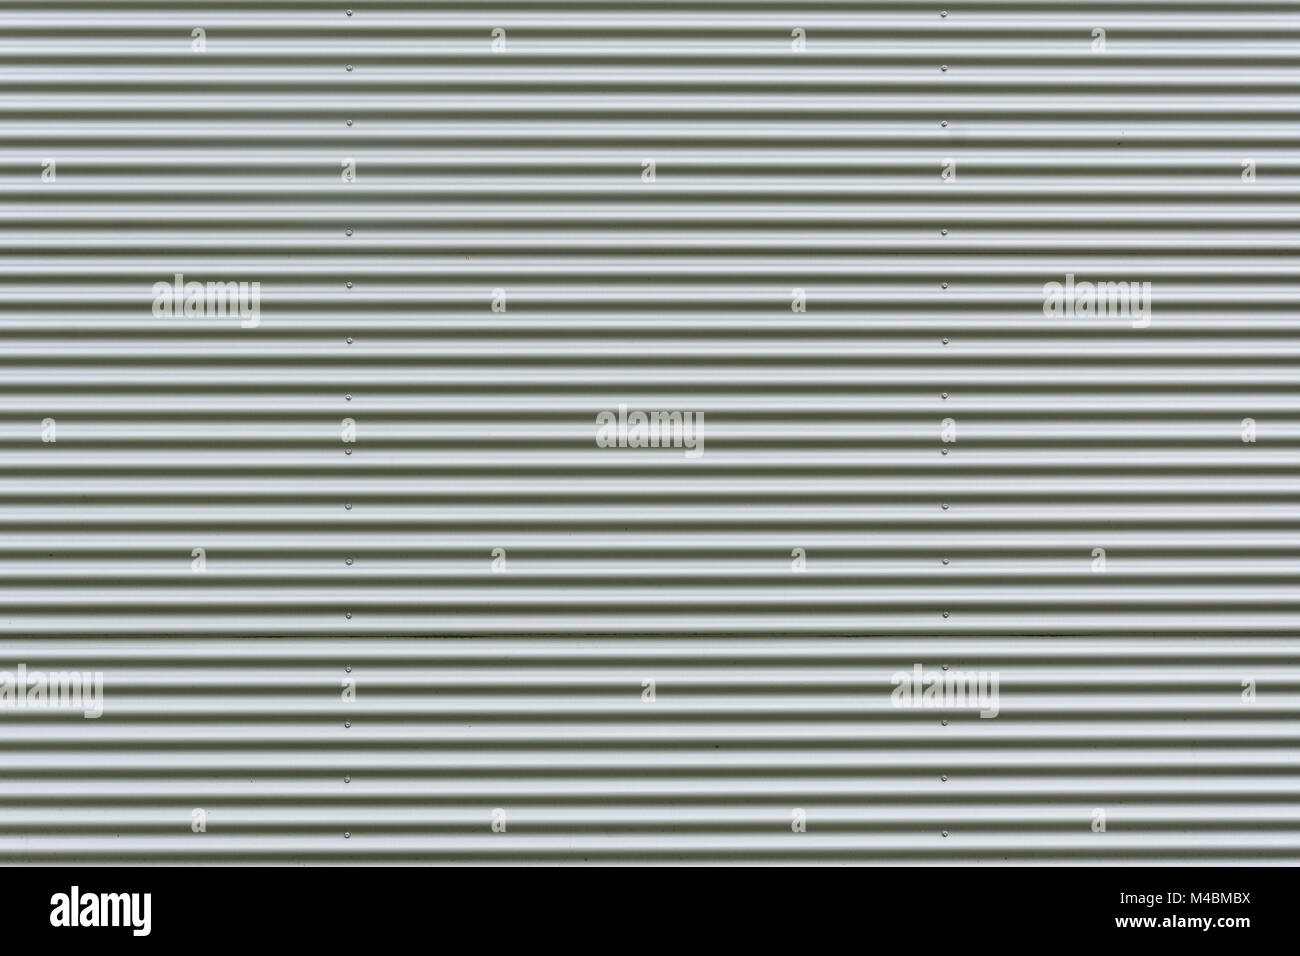 Modern Cladding Stockfotos & Modern Cladding Bilder - Alamy